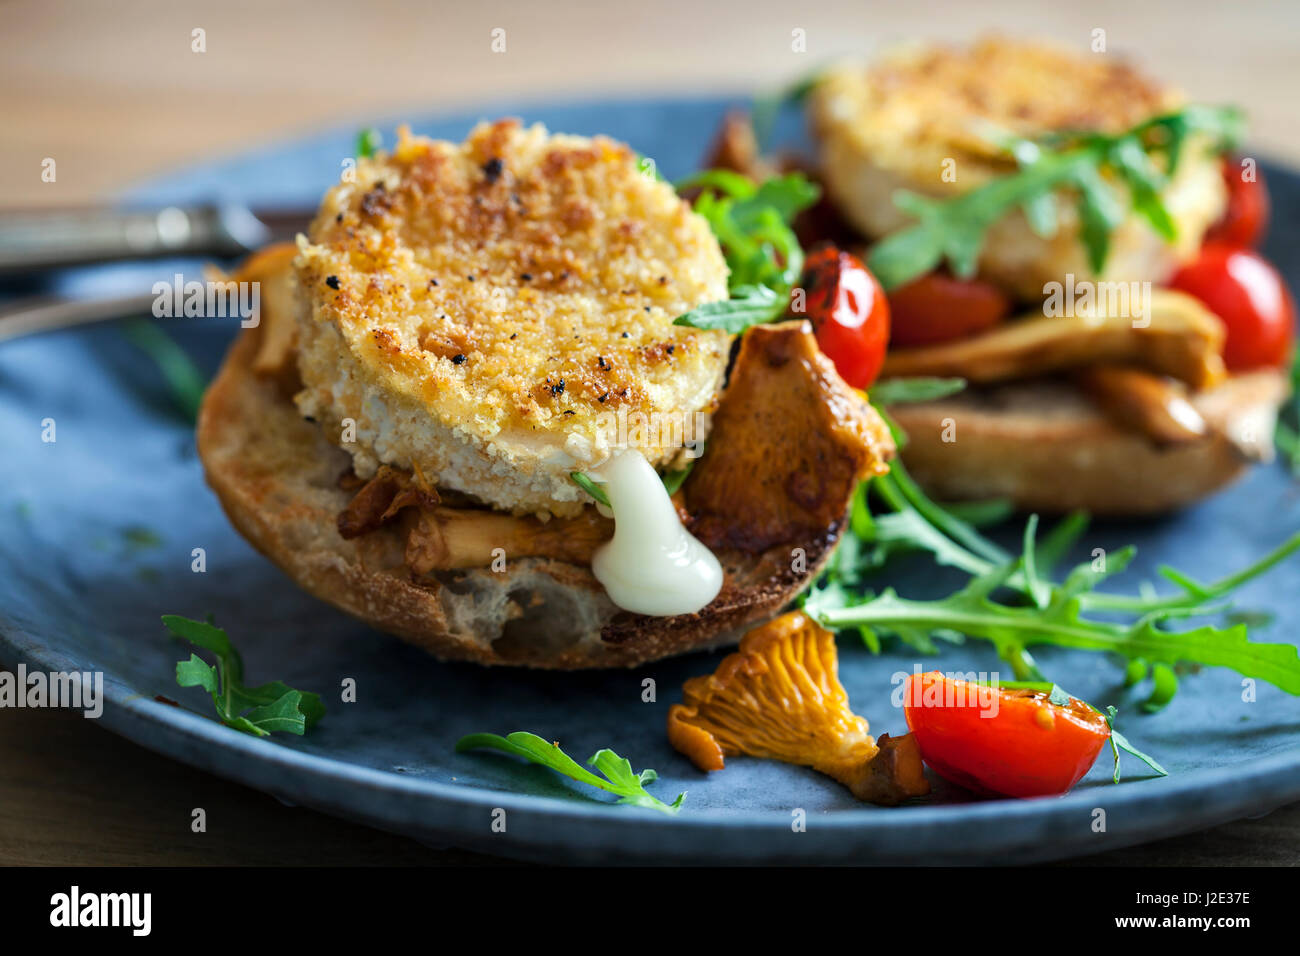 Baked goat cheese on sourdough bread with chanterelle mushrooms and cherry tomatoes - Stock Image